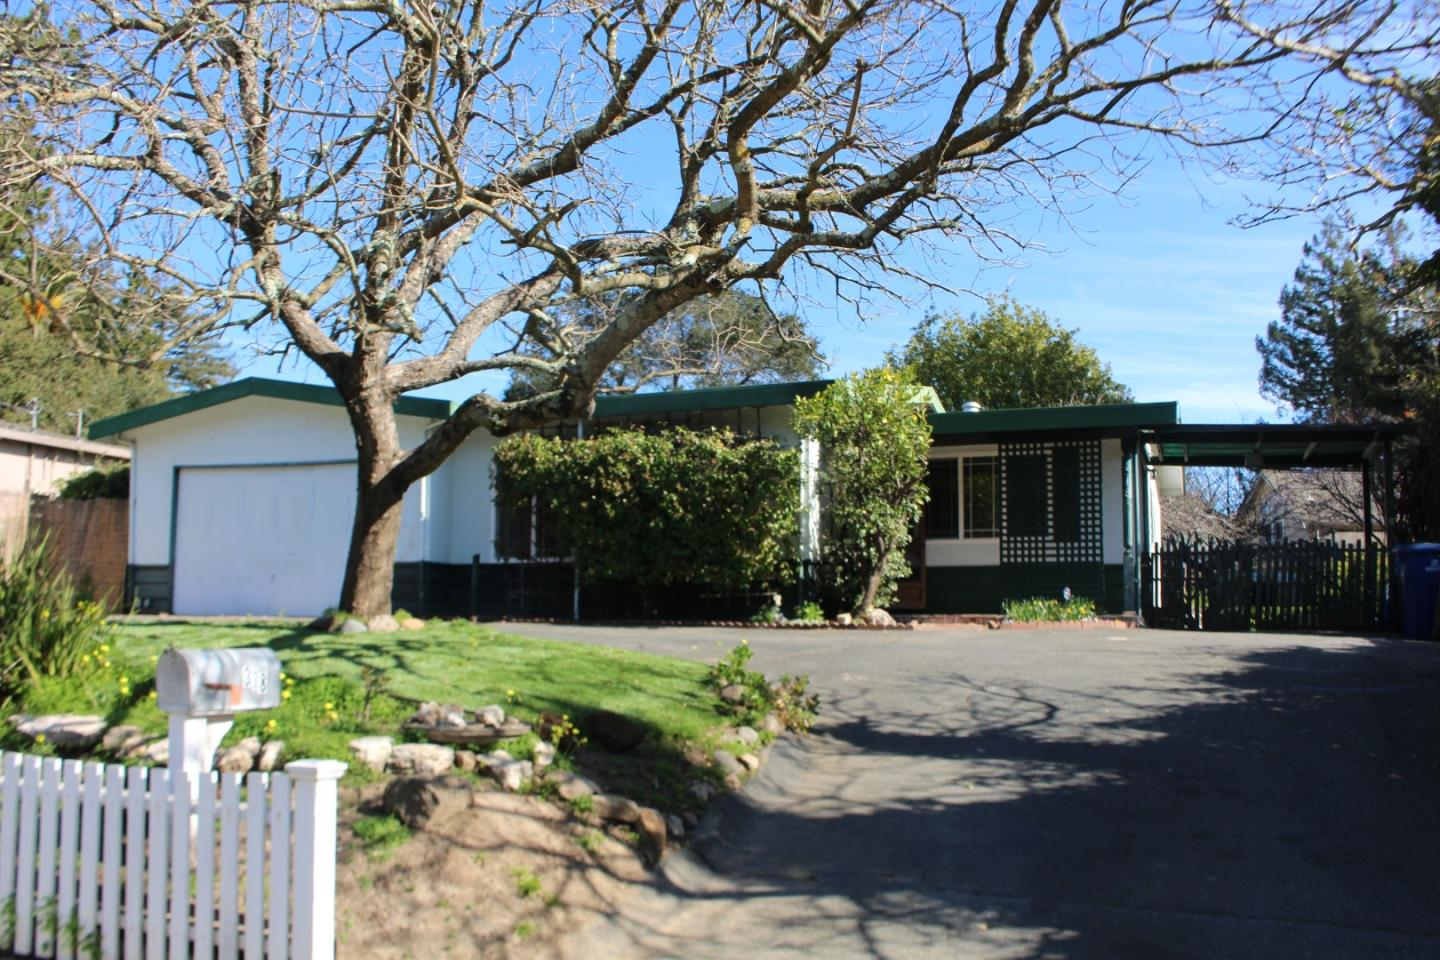 Surprisingly private, this little gem on PLYMOUTH Street,  like the classic car, is solidly built, fun and sporty.  Step into this mid-century classic single level home with plenty of parking in the circular driveway and tasty fruit trees in back Seller says there's room for a unit in the HUGE backyard (Gazebo gives you a feel). The home has a great layout with living room entry- just a fun space to hang out and relax. The dining room kitchen is just the right size with utility room for laundry and extra pantry  It's got a gas oven for warming up those late-night food deliveries. The retro pink bathroom is back and we've got one for you. Move-in and choose your own paint and carpet colors for an instant update.  Step into the market with a place you can call your own; just a short bike ride to downtown and everything Ocean St has to offer or a quick jaunt to Silicon Valley. It is located near the Hwy 1 onramp.